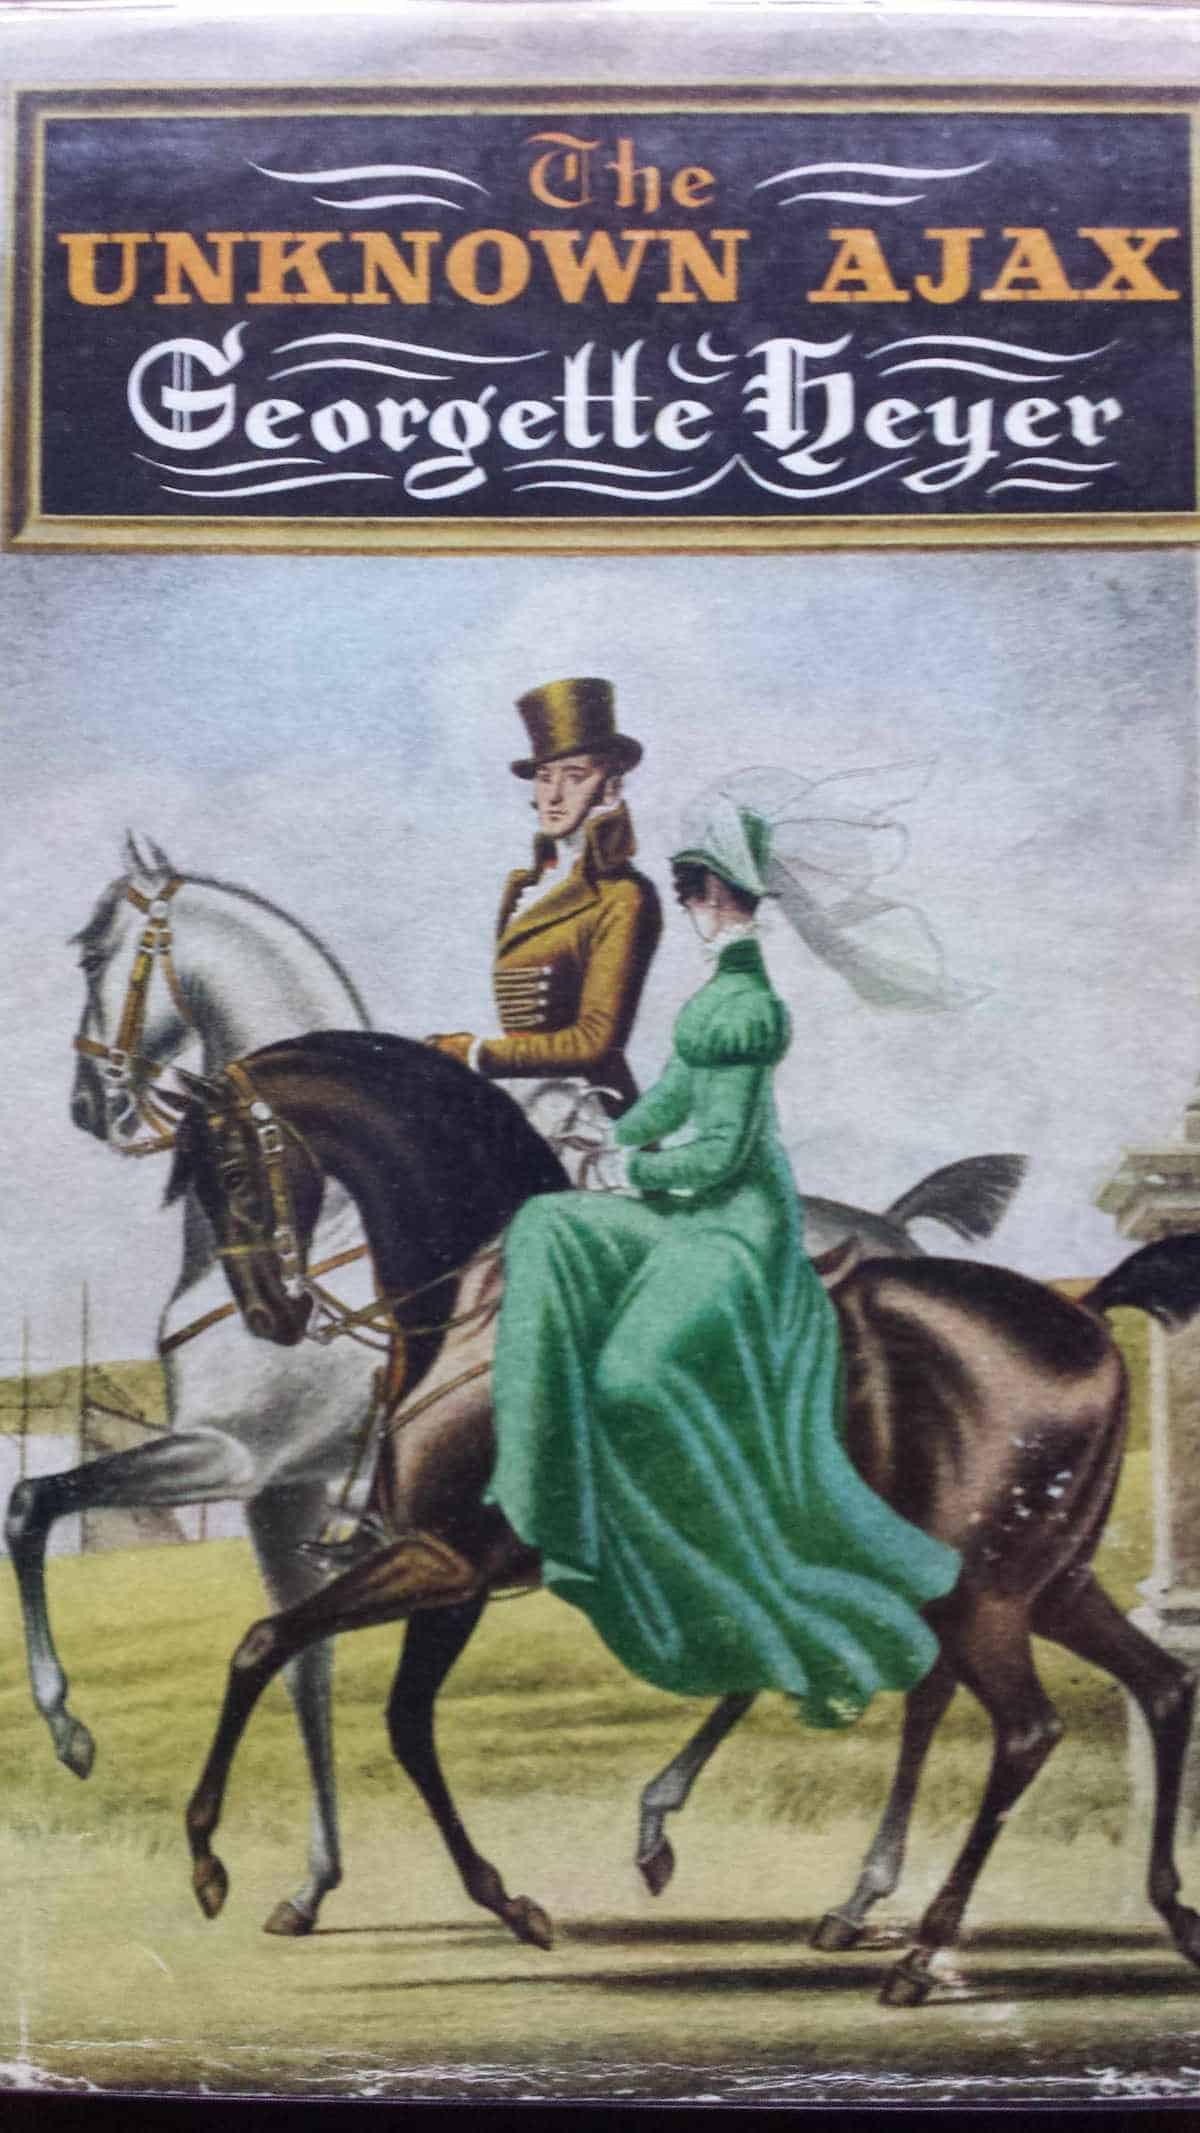 The Unknown Ajax - one of Heyer's funniest novels